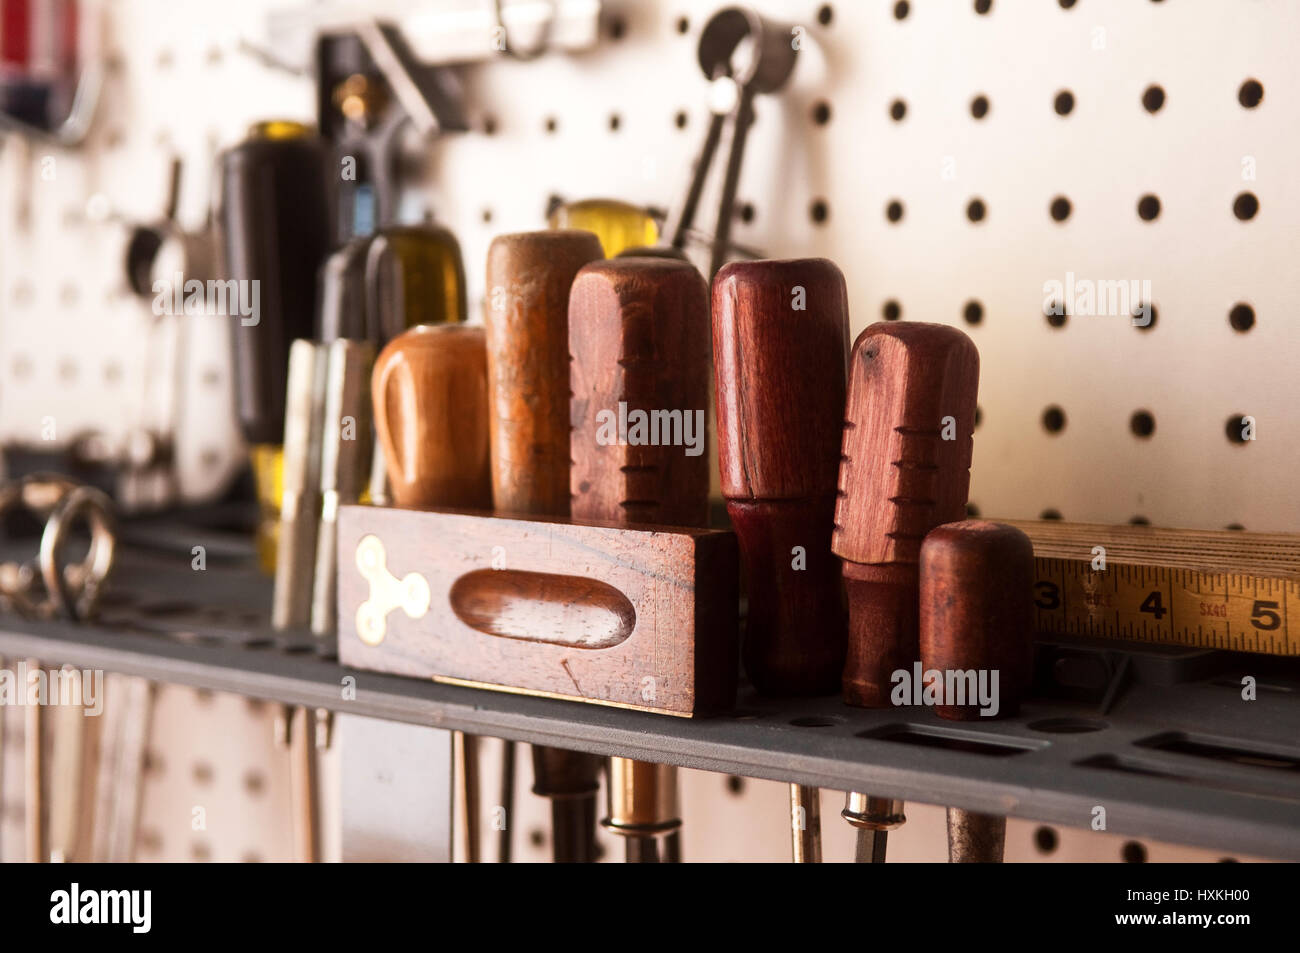 screwdriver set and tools with pegboard. Vintage wooden tools. Workshop organization. - Stock Image